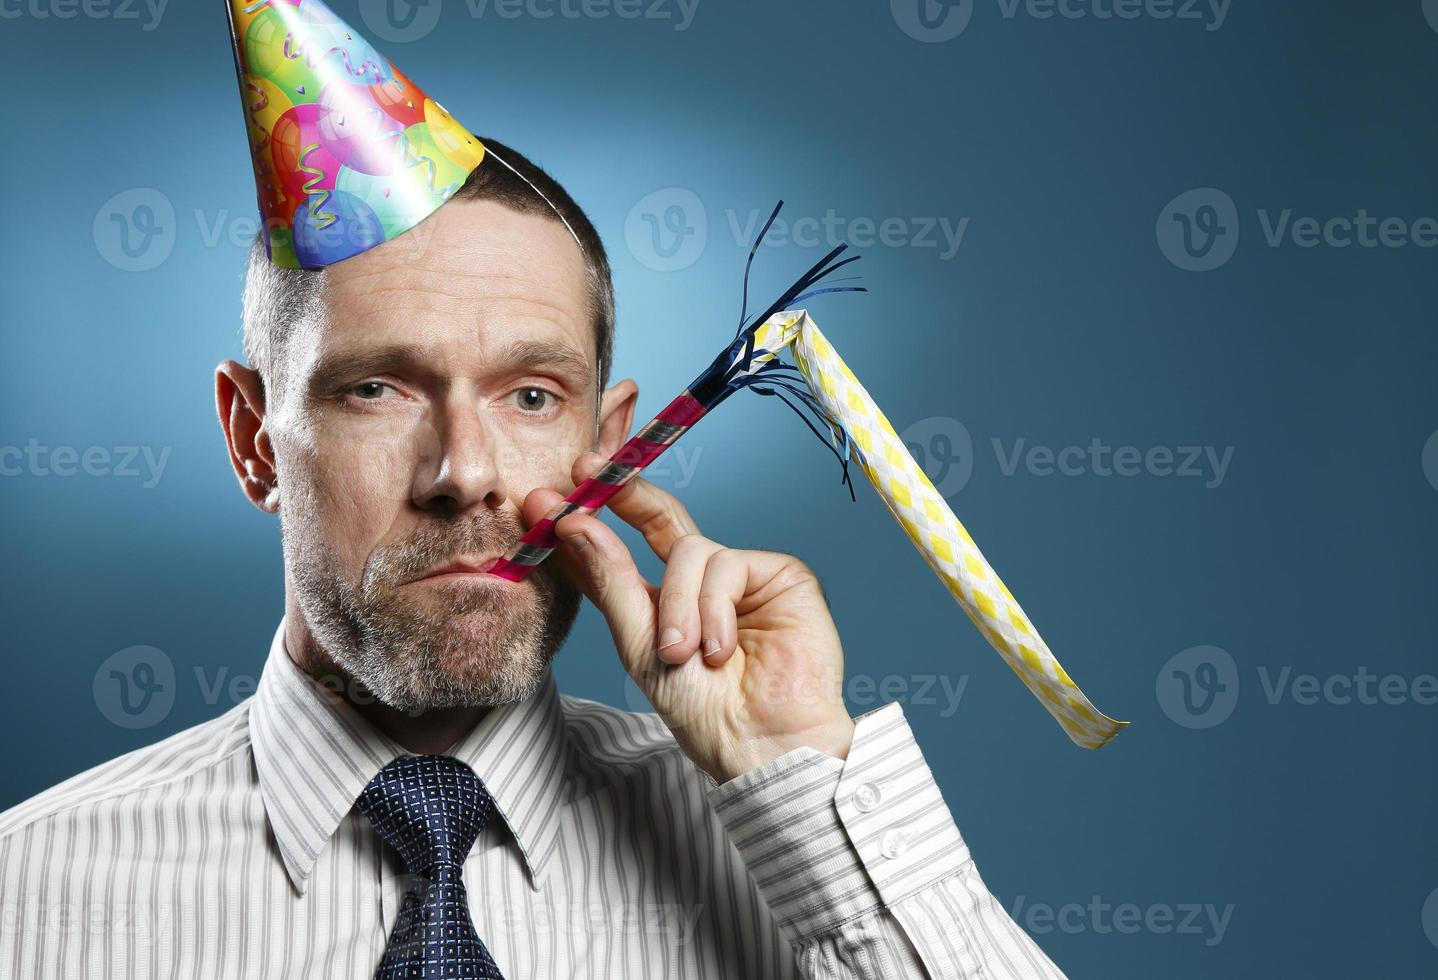 Man Wearing Tie With Party Hat And Horn Blower photo